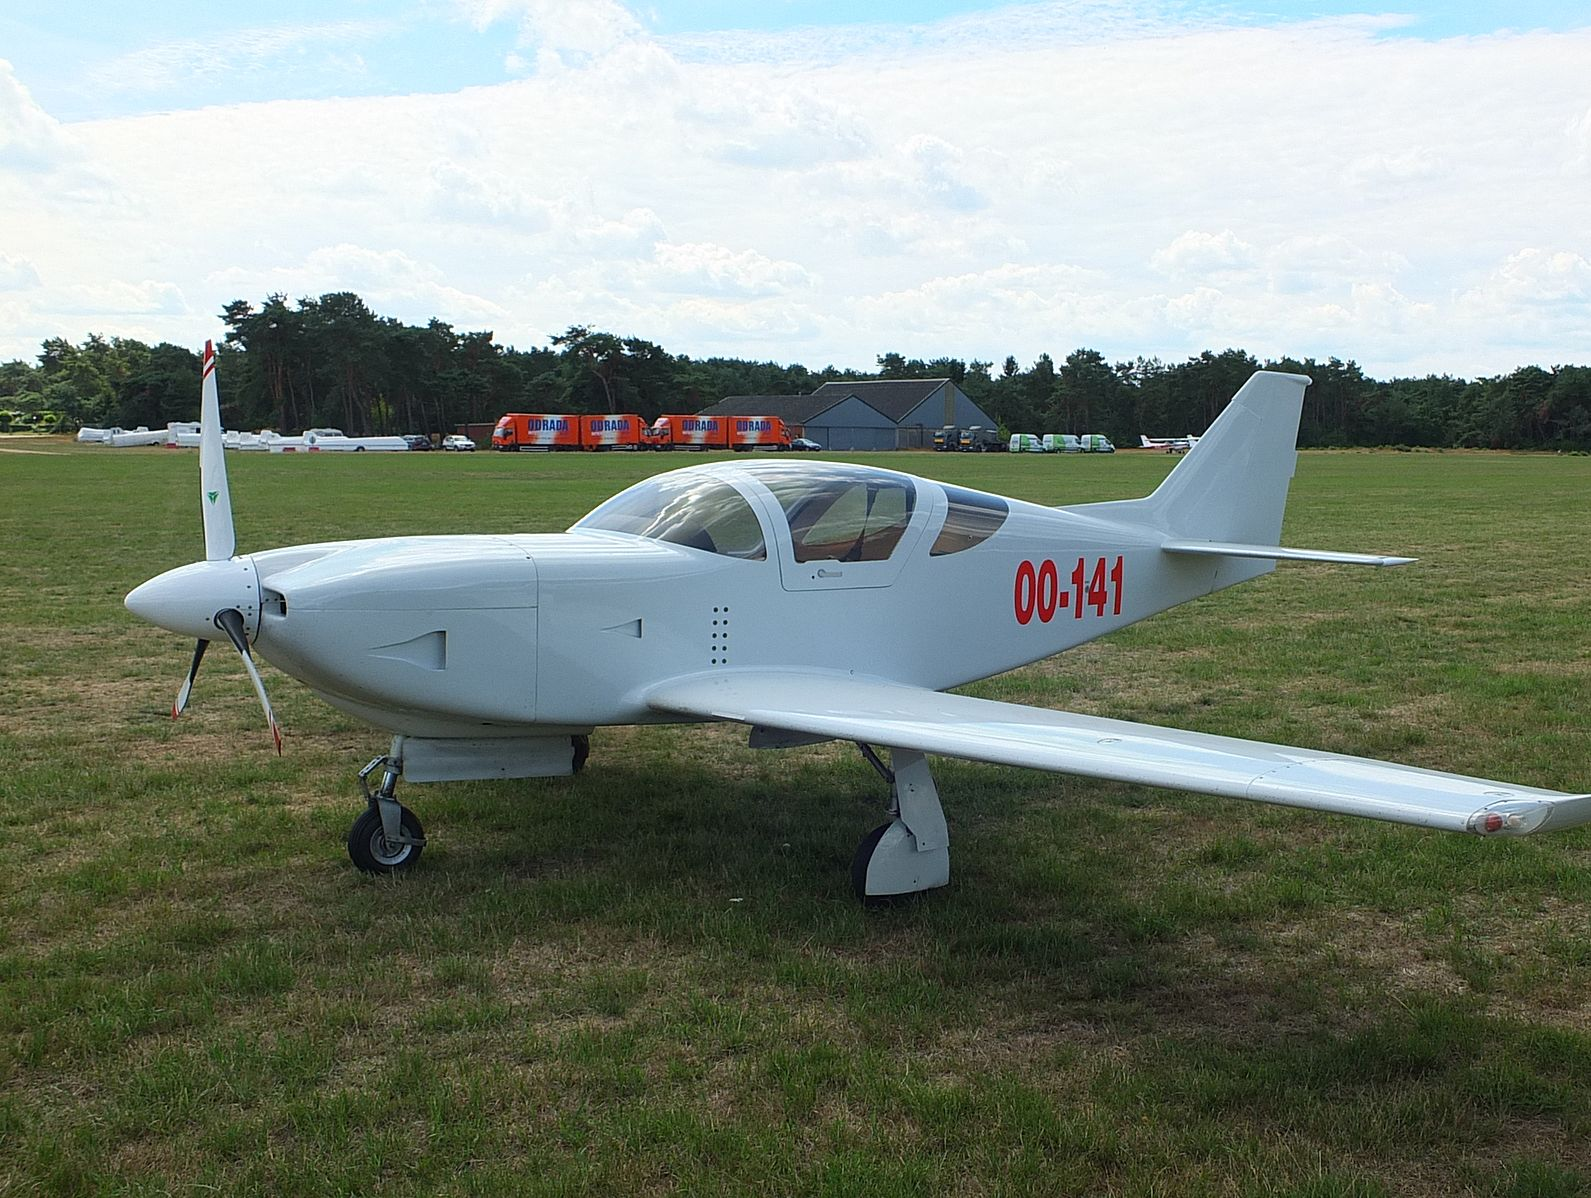 Glasair II-S, Photo © Ad Meskens / Wikimedia Commons